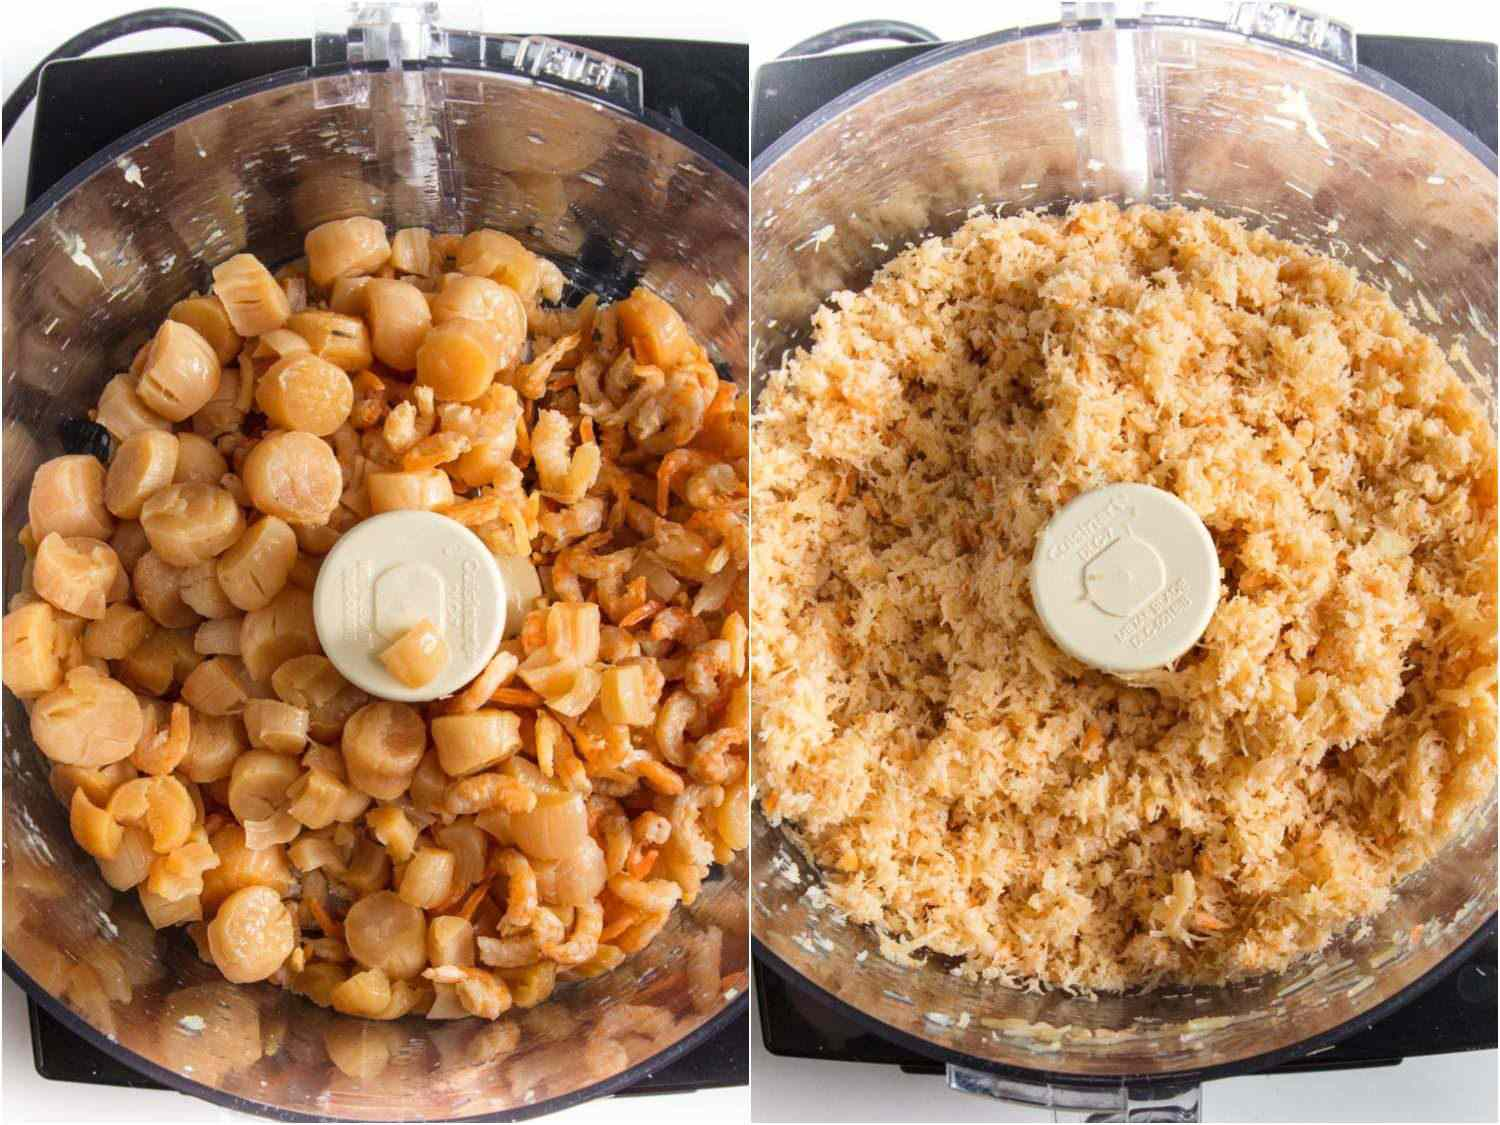 Processing rehydrated scallops and shrimp together makes for an overly-chopped texture.